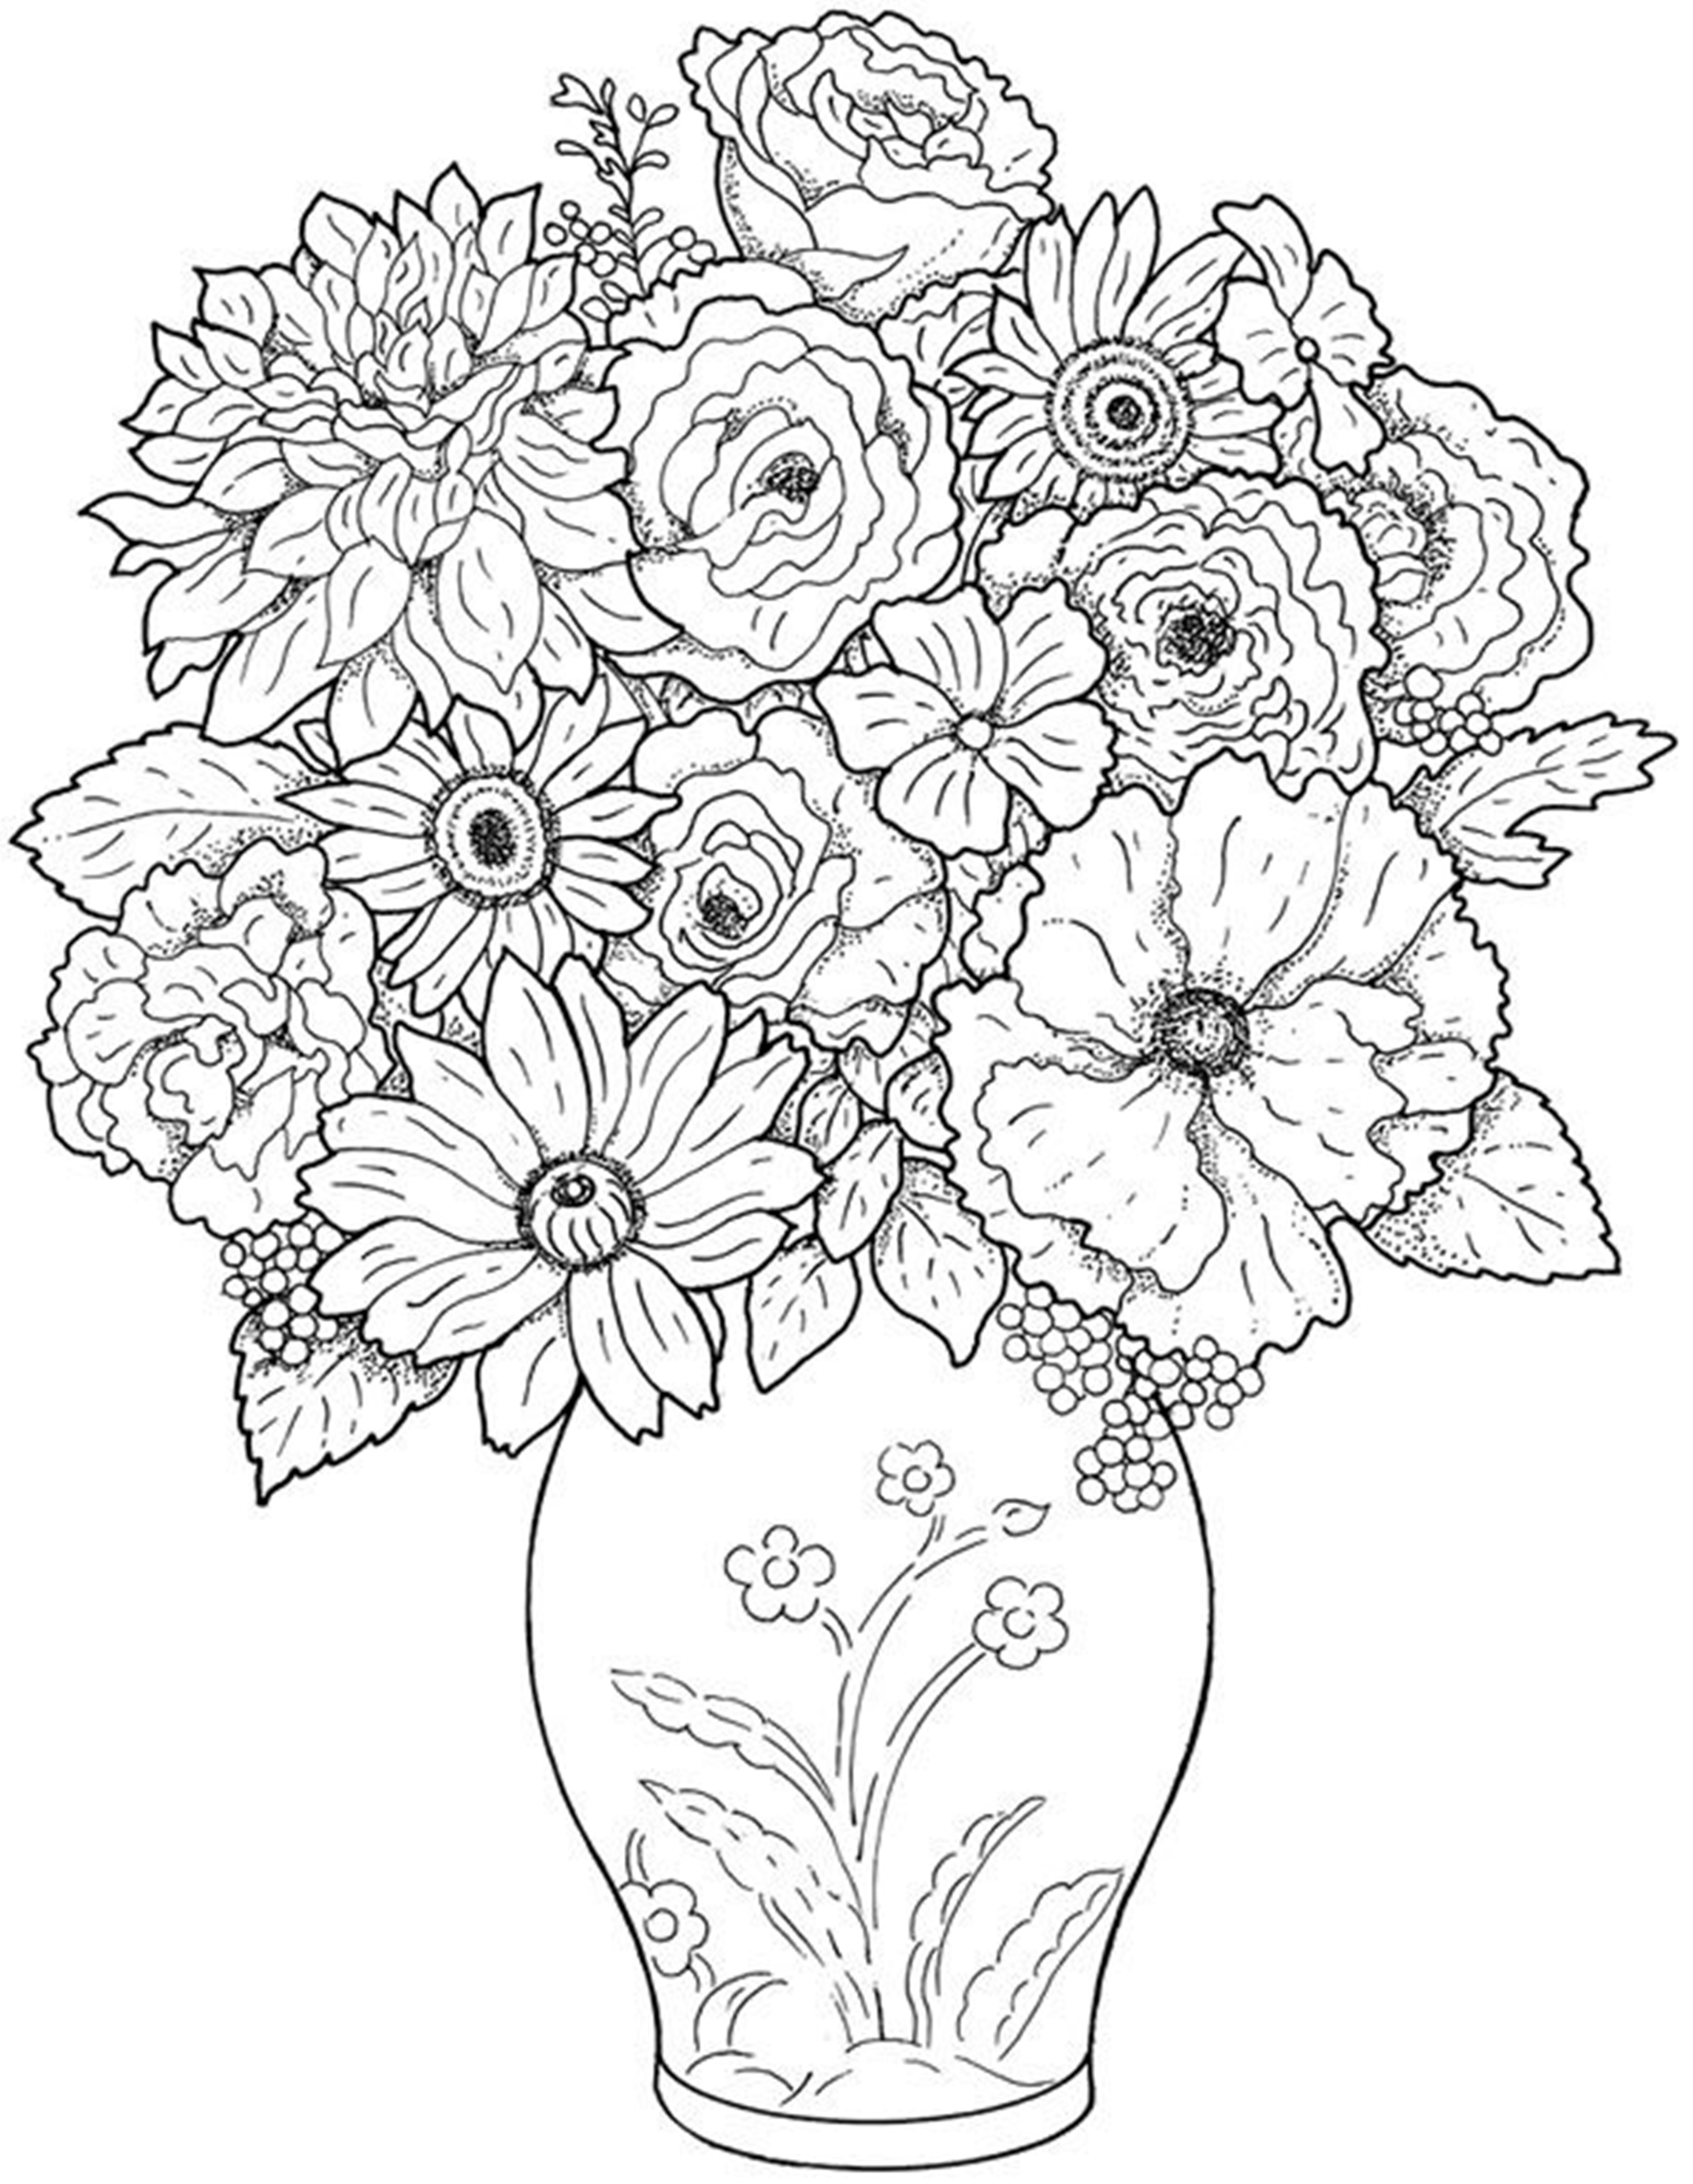 coloring pages flowers free printable flower coloring pages for kids best flowers pages coloring